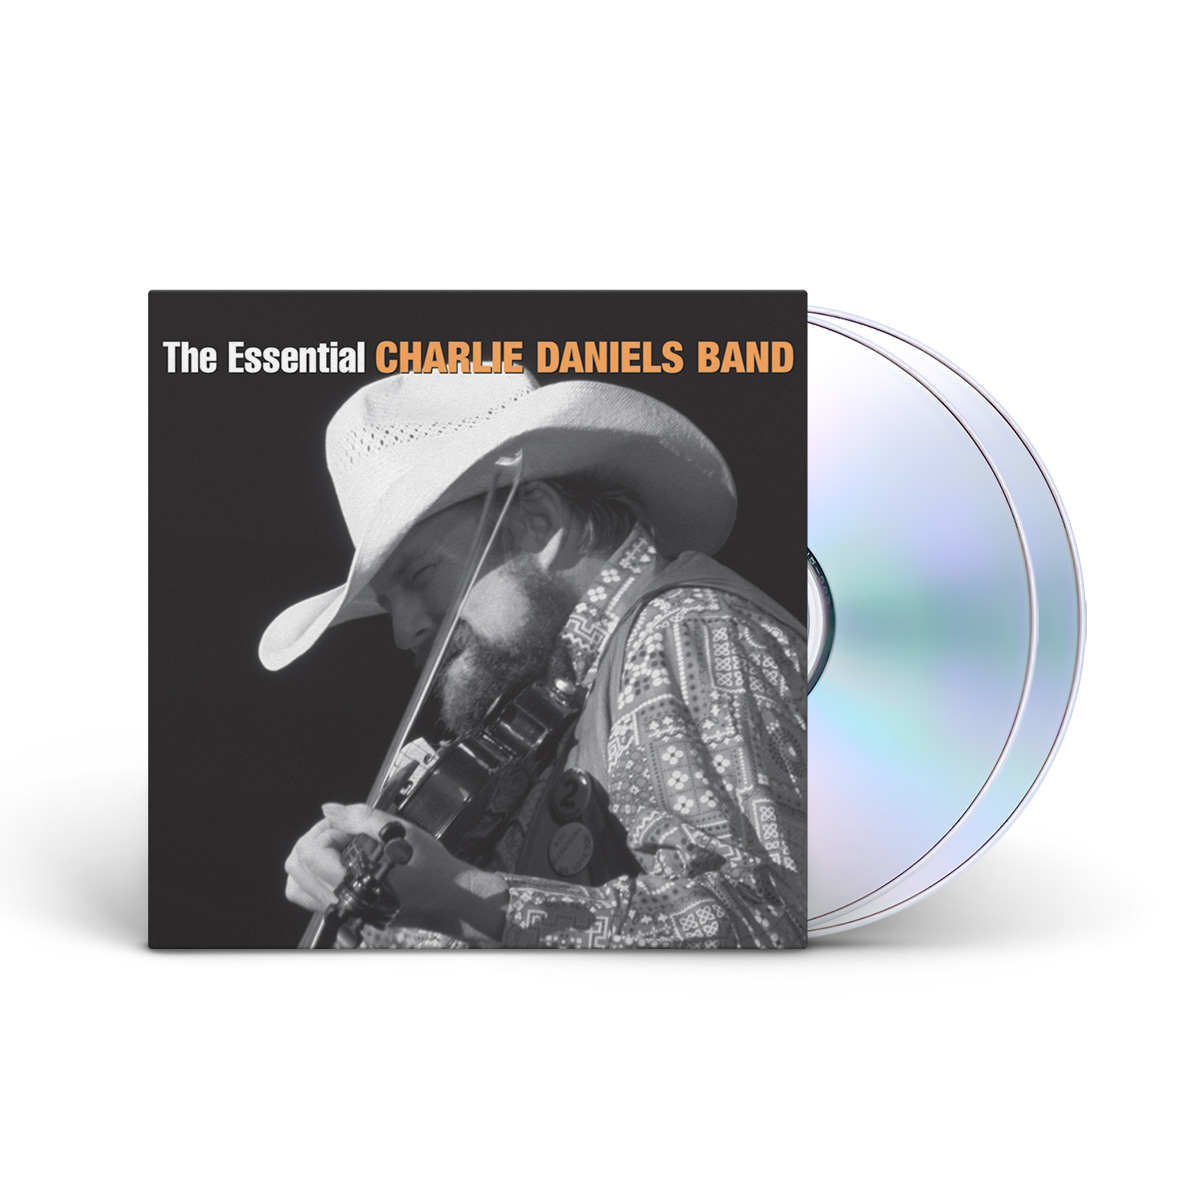 The Charlie Daniels Band: The Essential Charlie Daniels Band CD